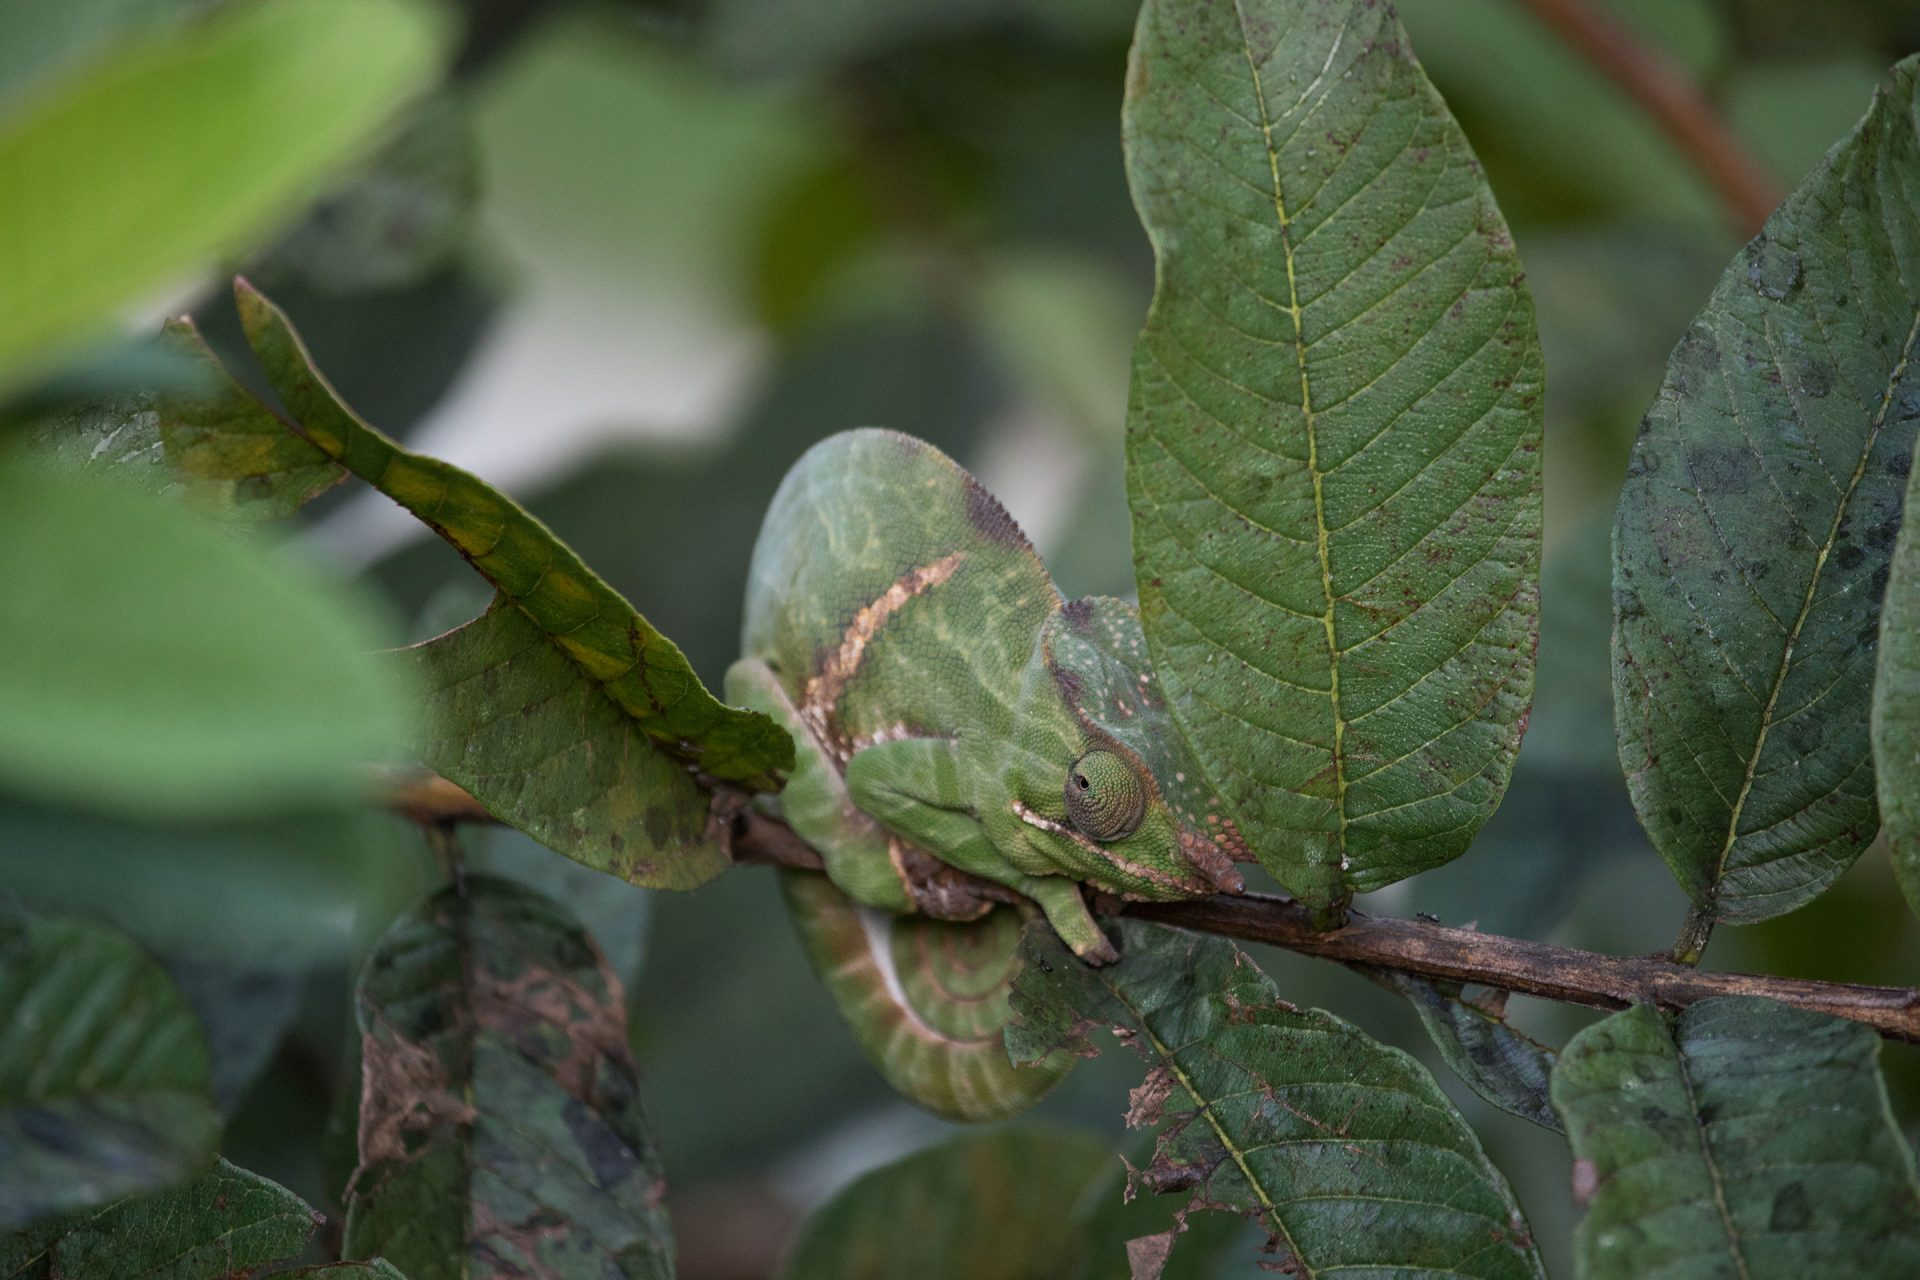 Two-banded Chameleon